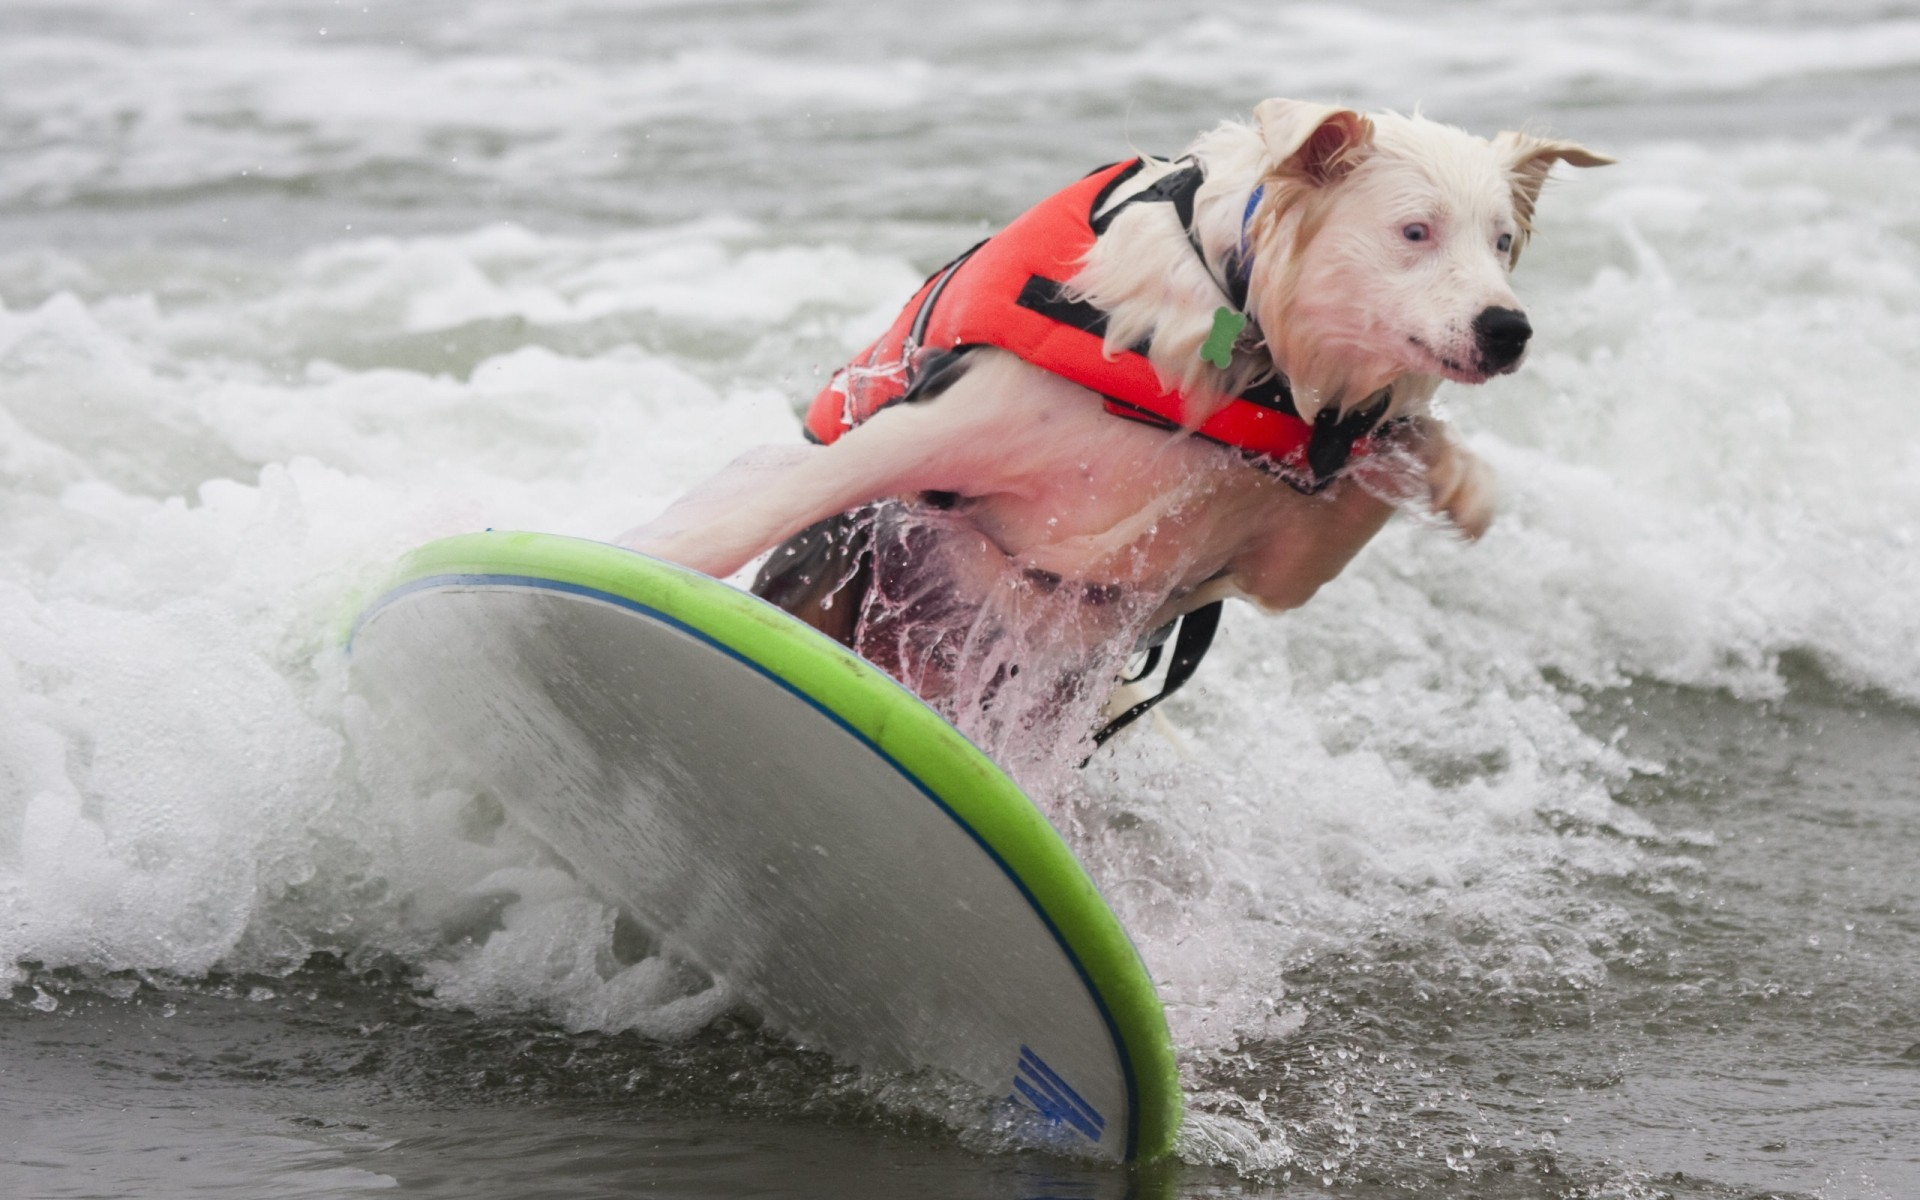 dogs water wet surf action water sports fun recreation splash beach one leisure sea competition ocean sports funny animals